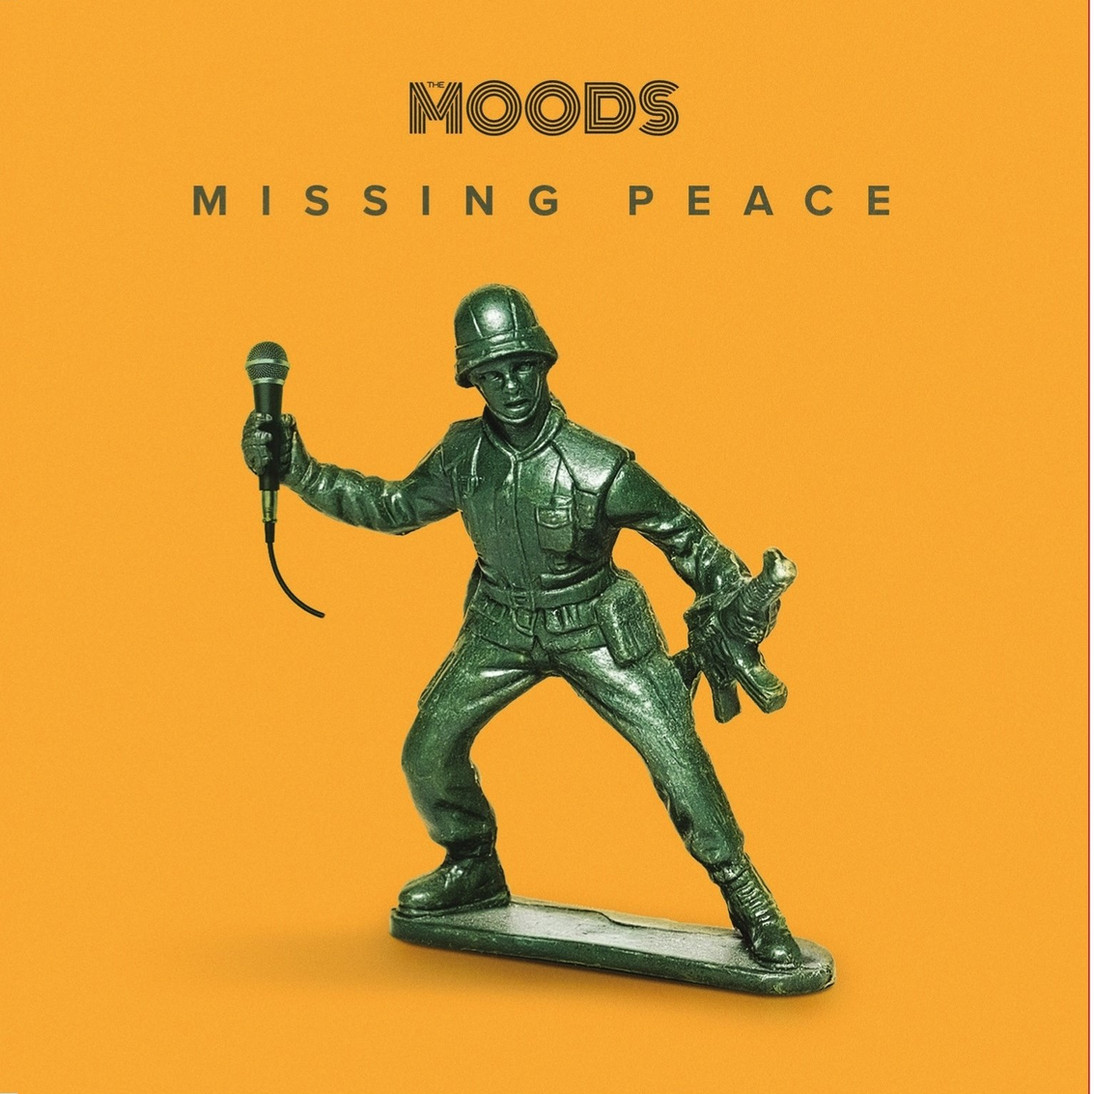 The Moods Missing Peace Skiddle A1M Records Album Single Cover Release Manchester